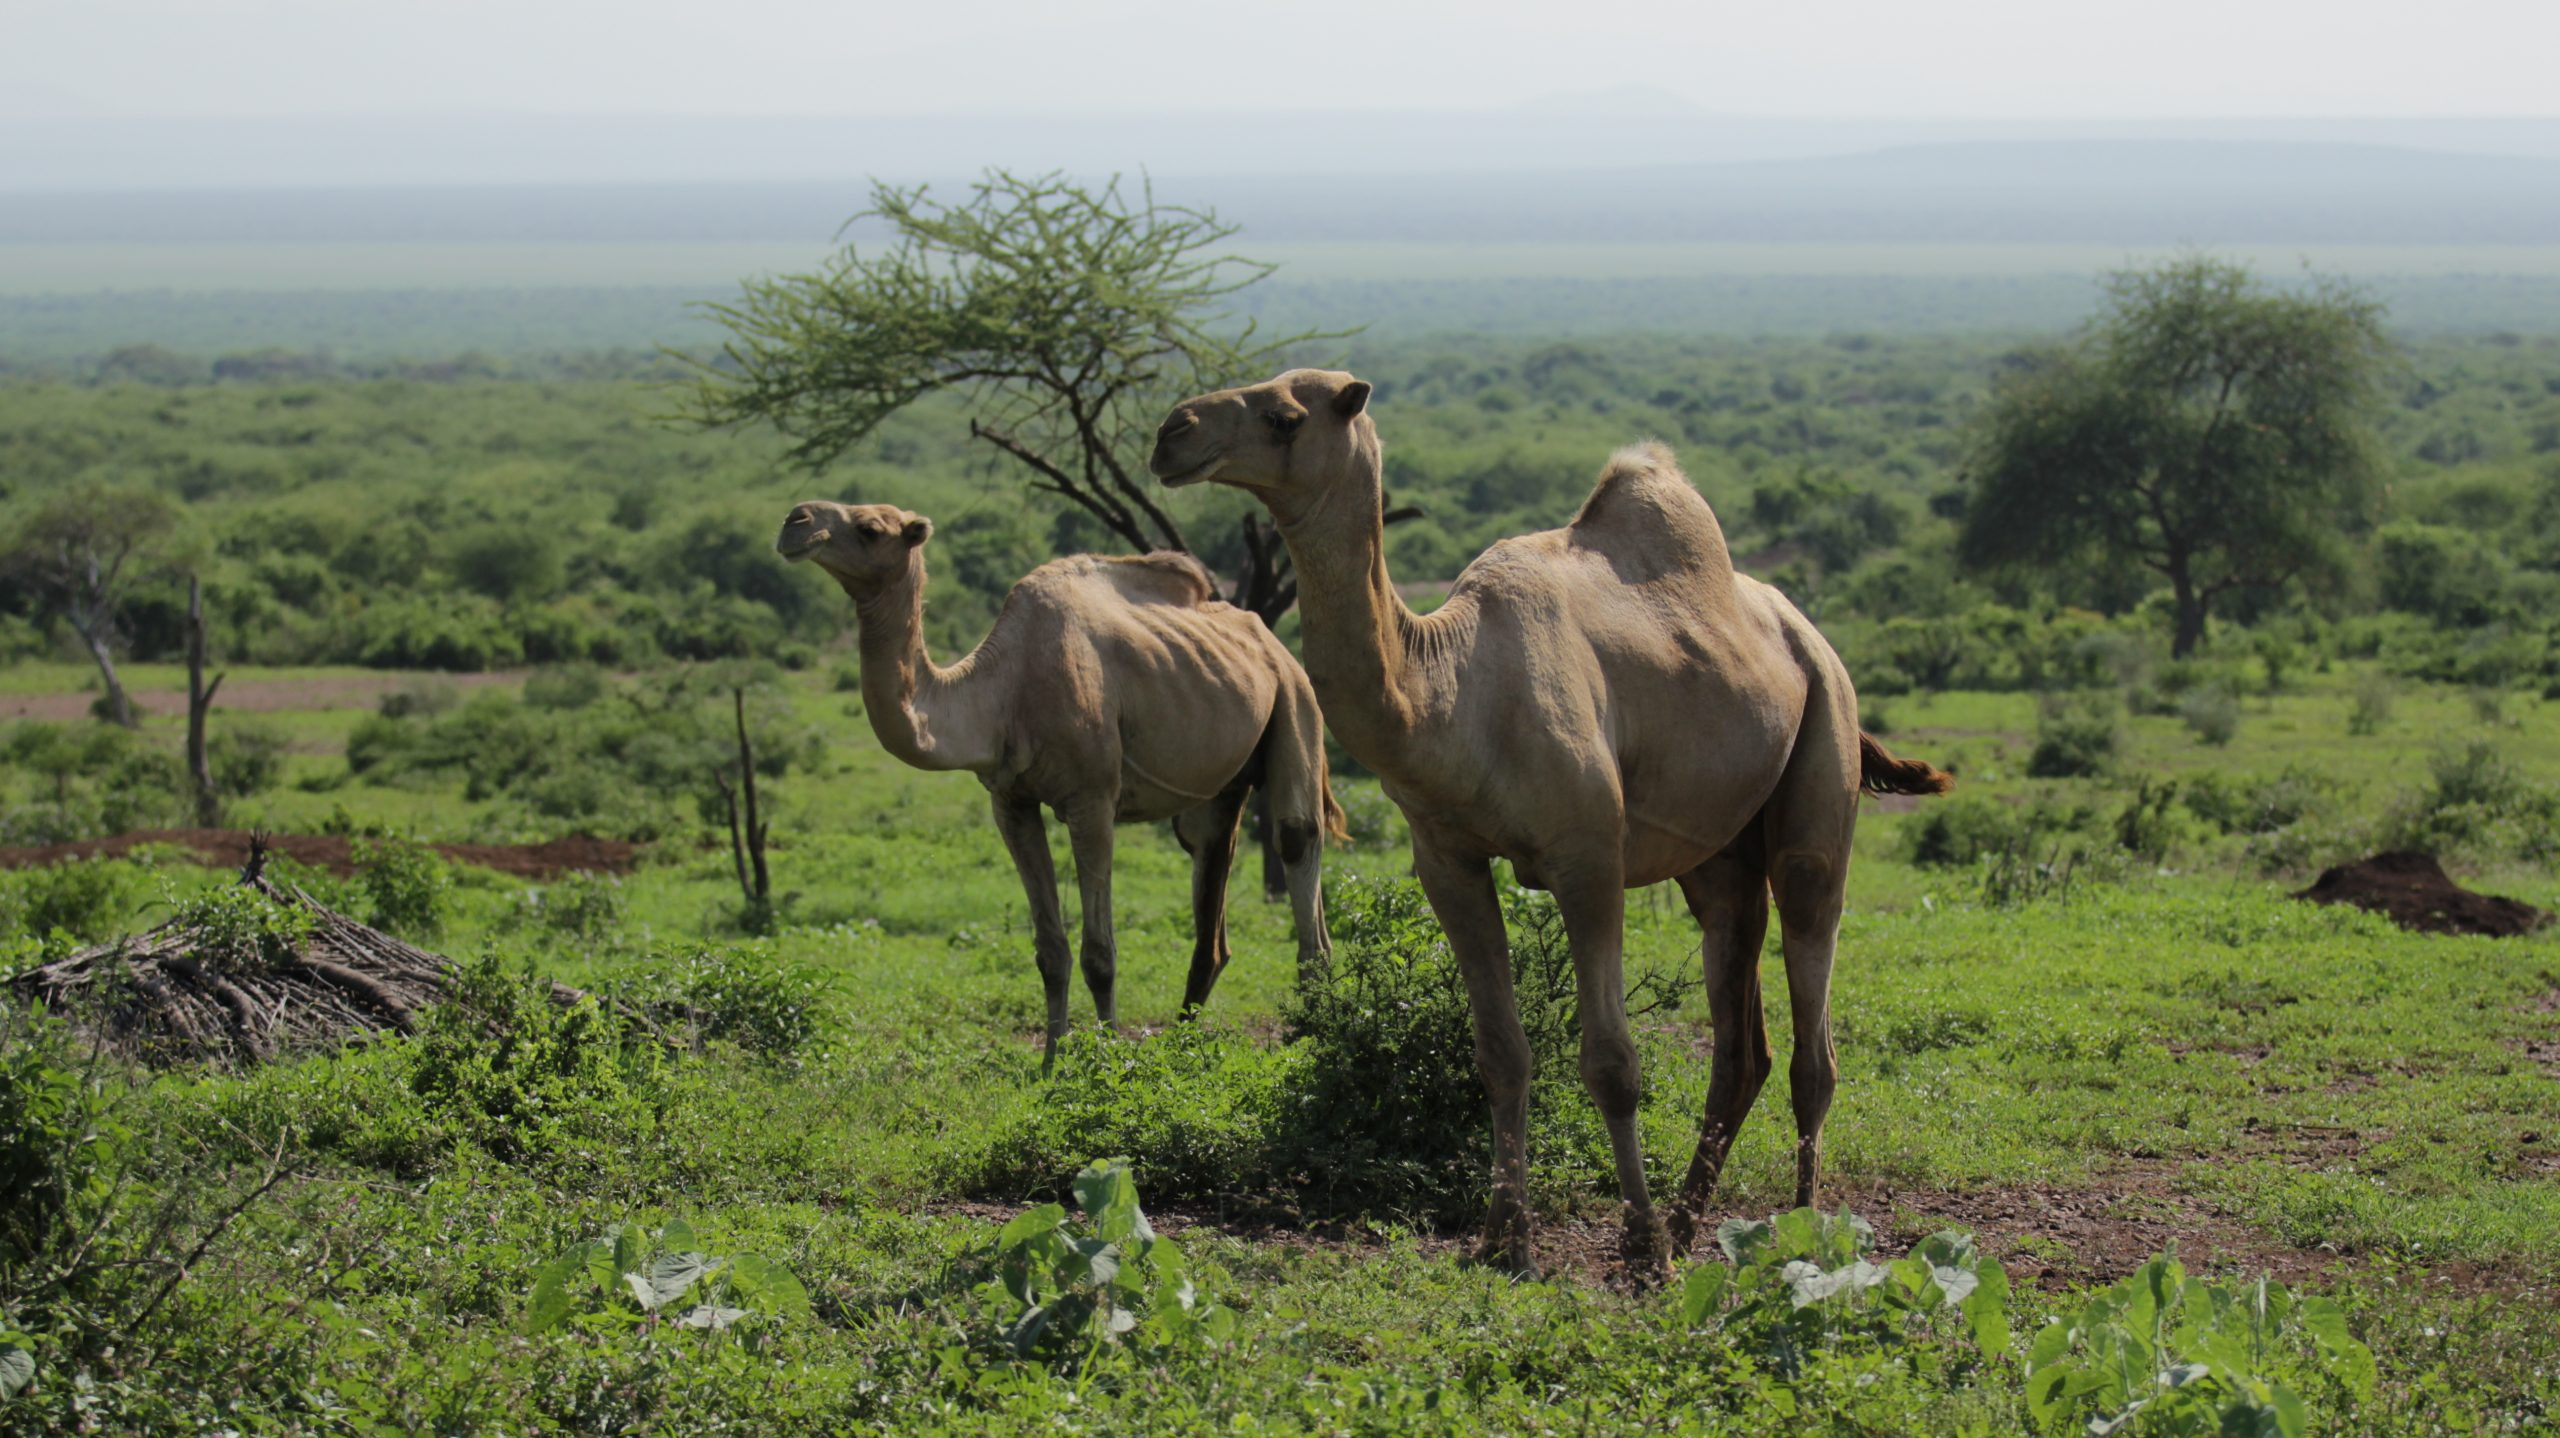 Camels sorrouded by nature.